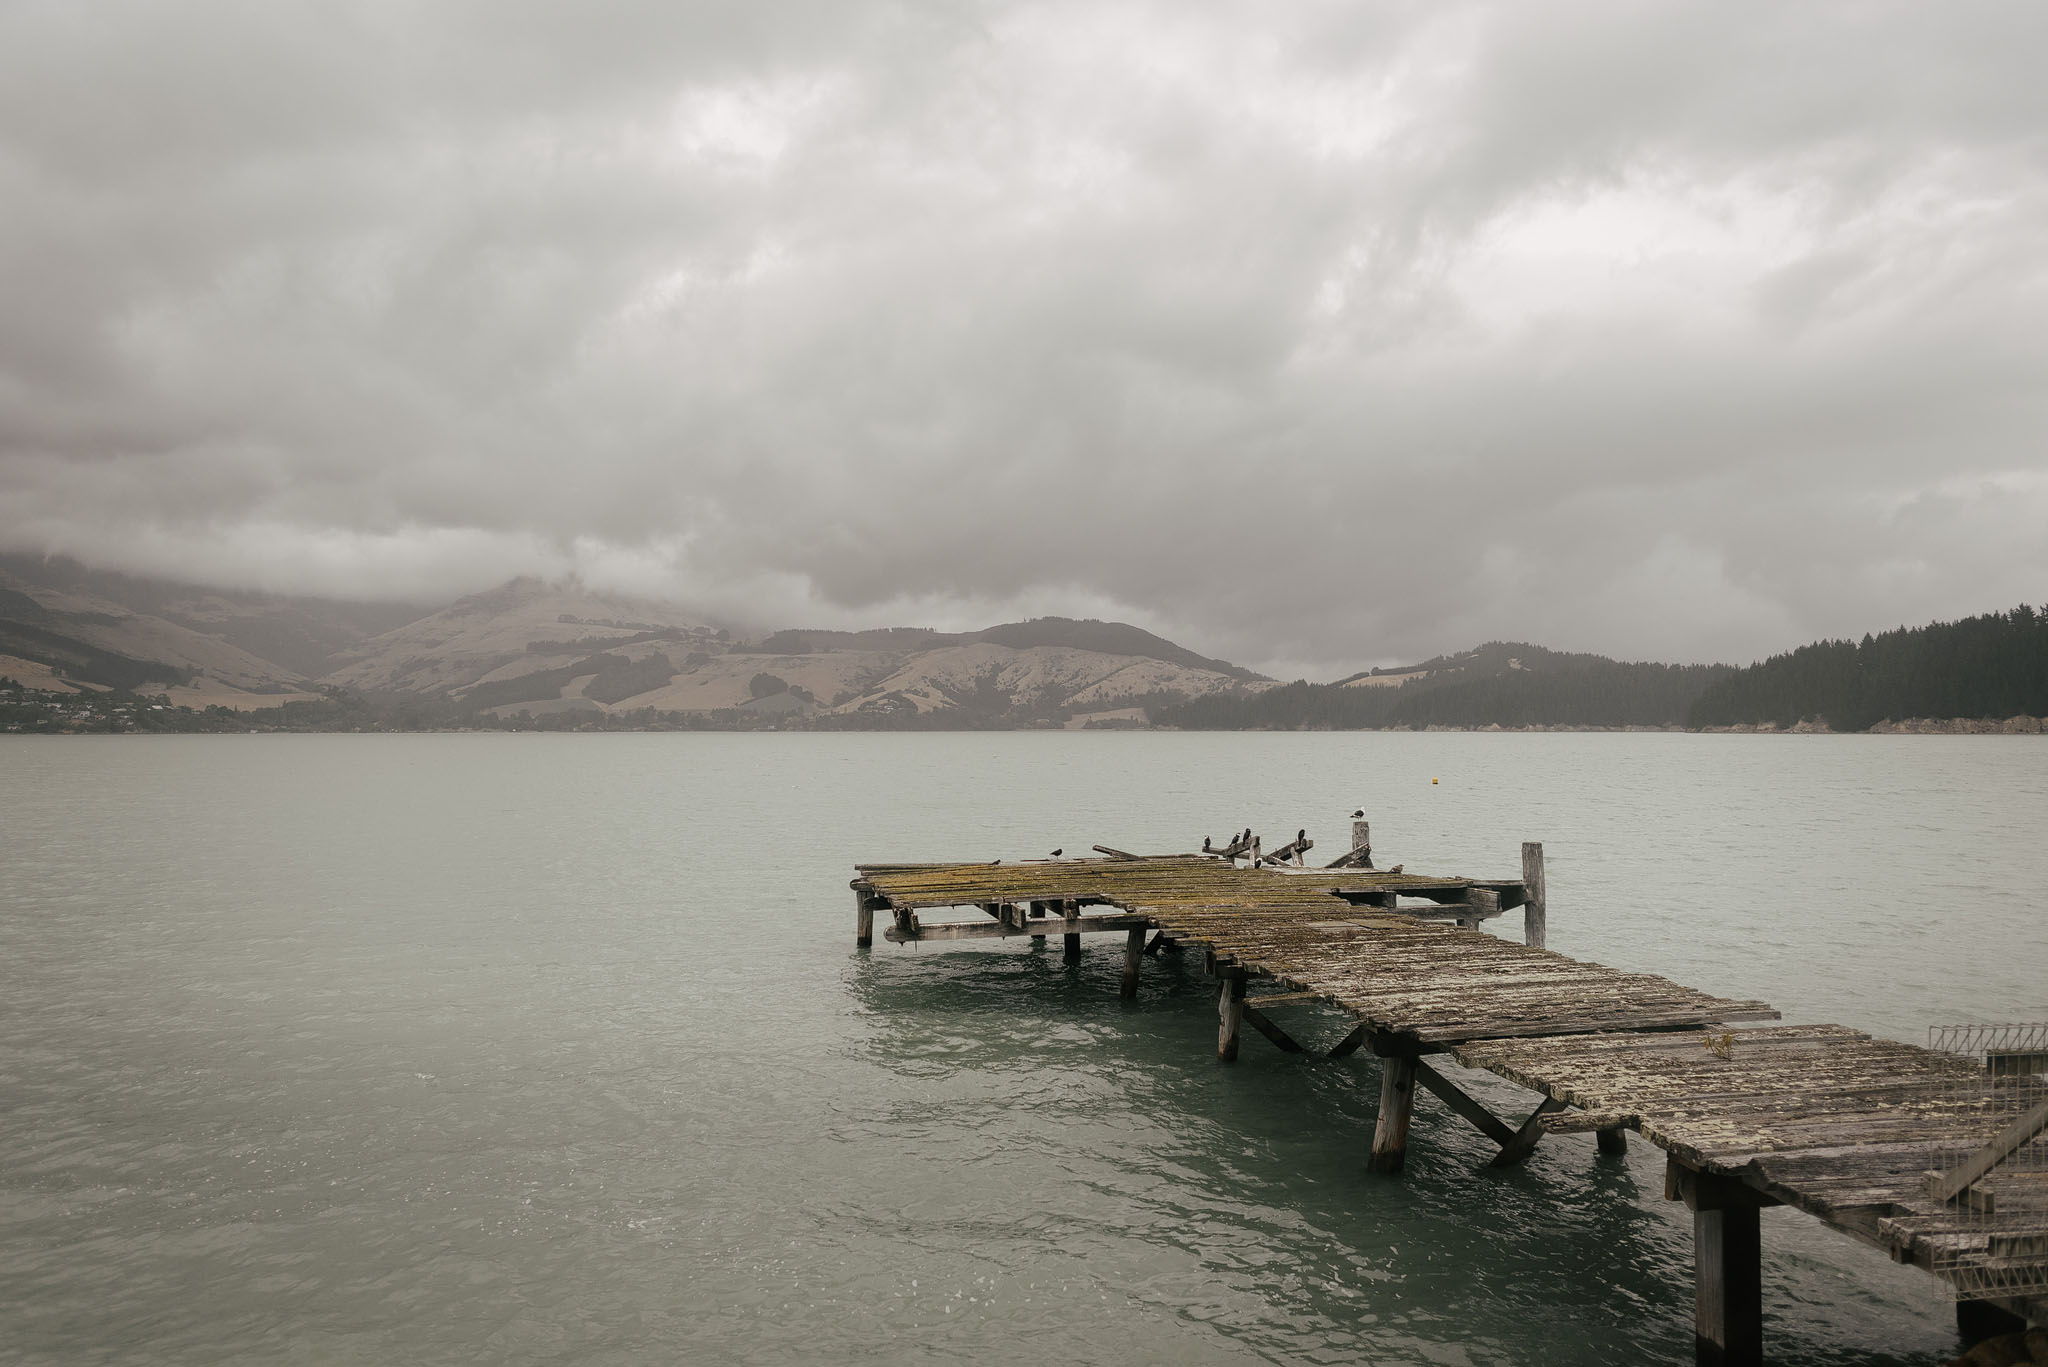 Quail Island old jetty on a rainy day